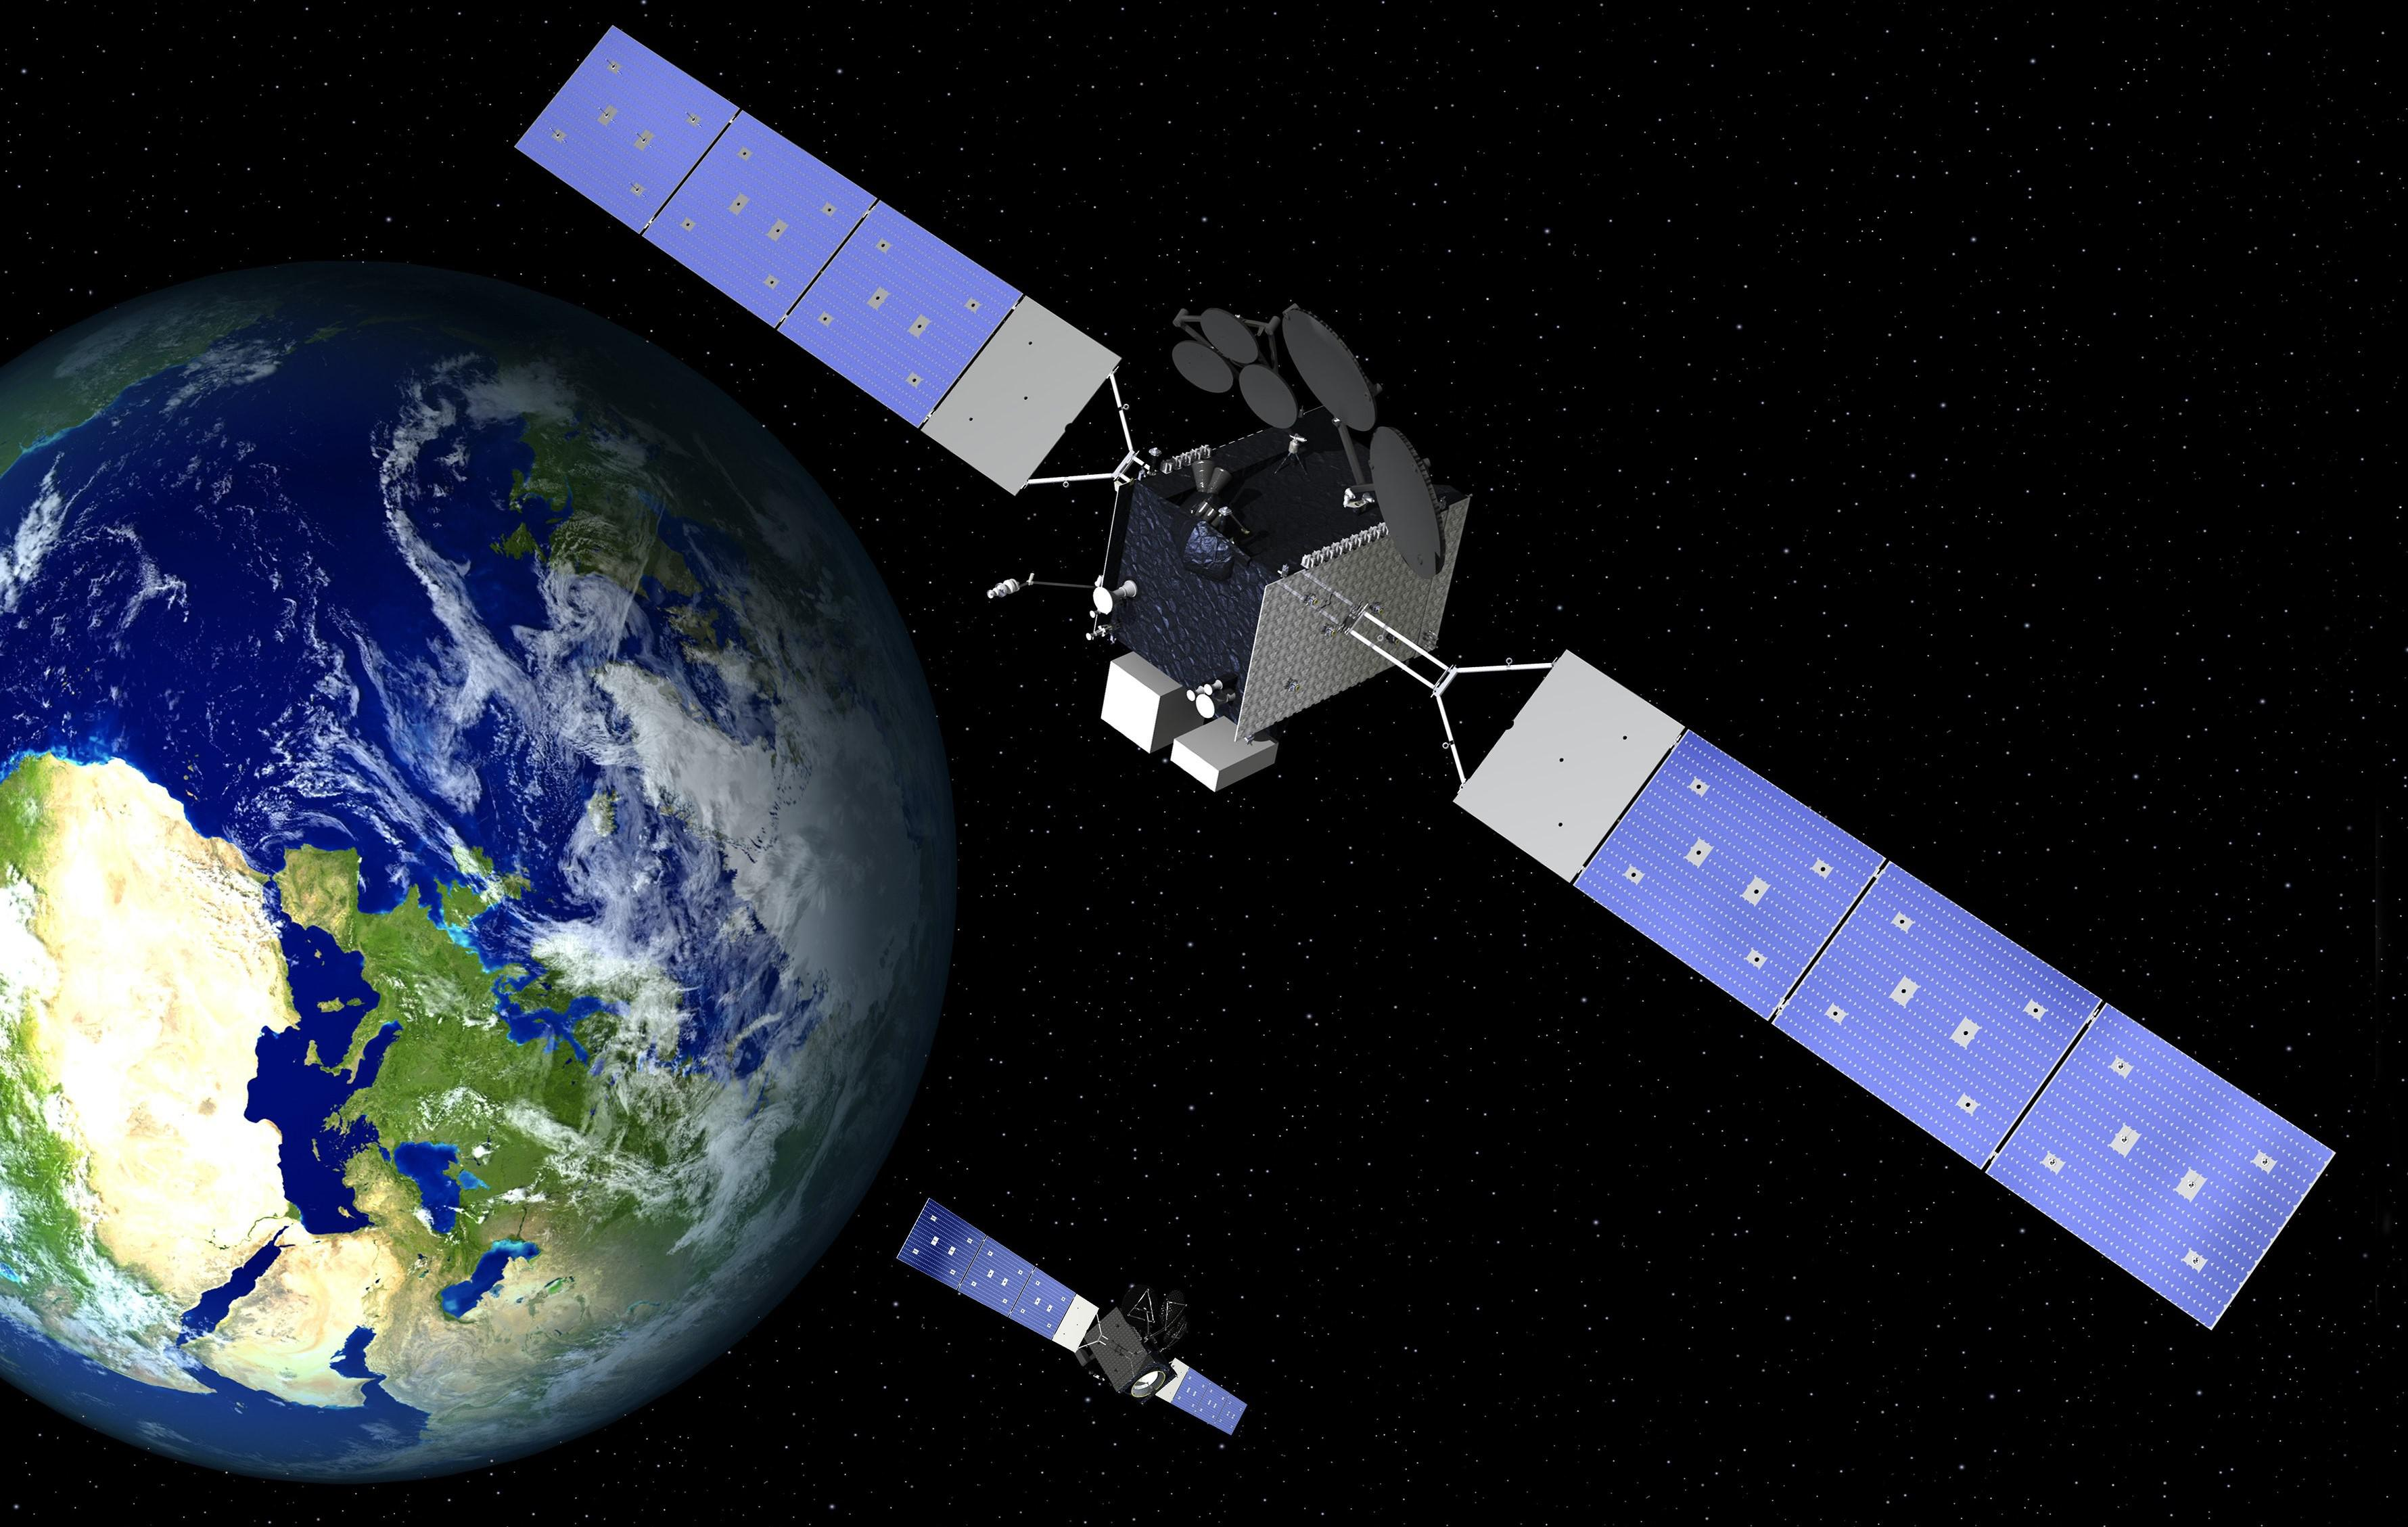 Arctic Satellite Broadband Mission ASBM satellites (Northrop Grumman) 1